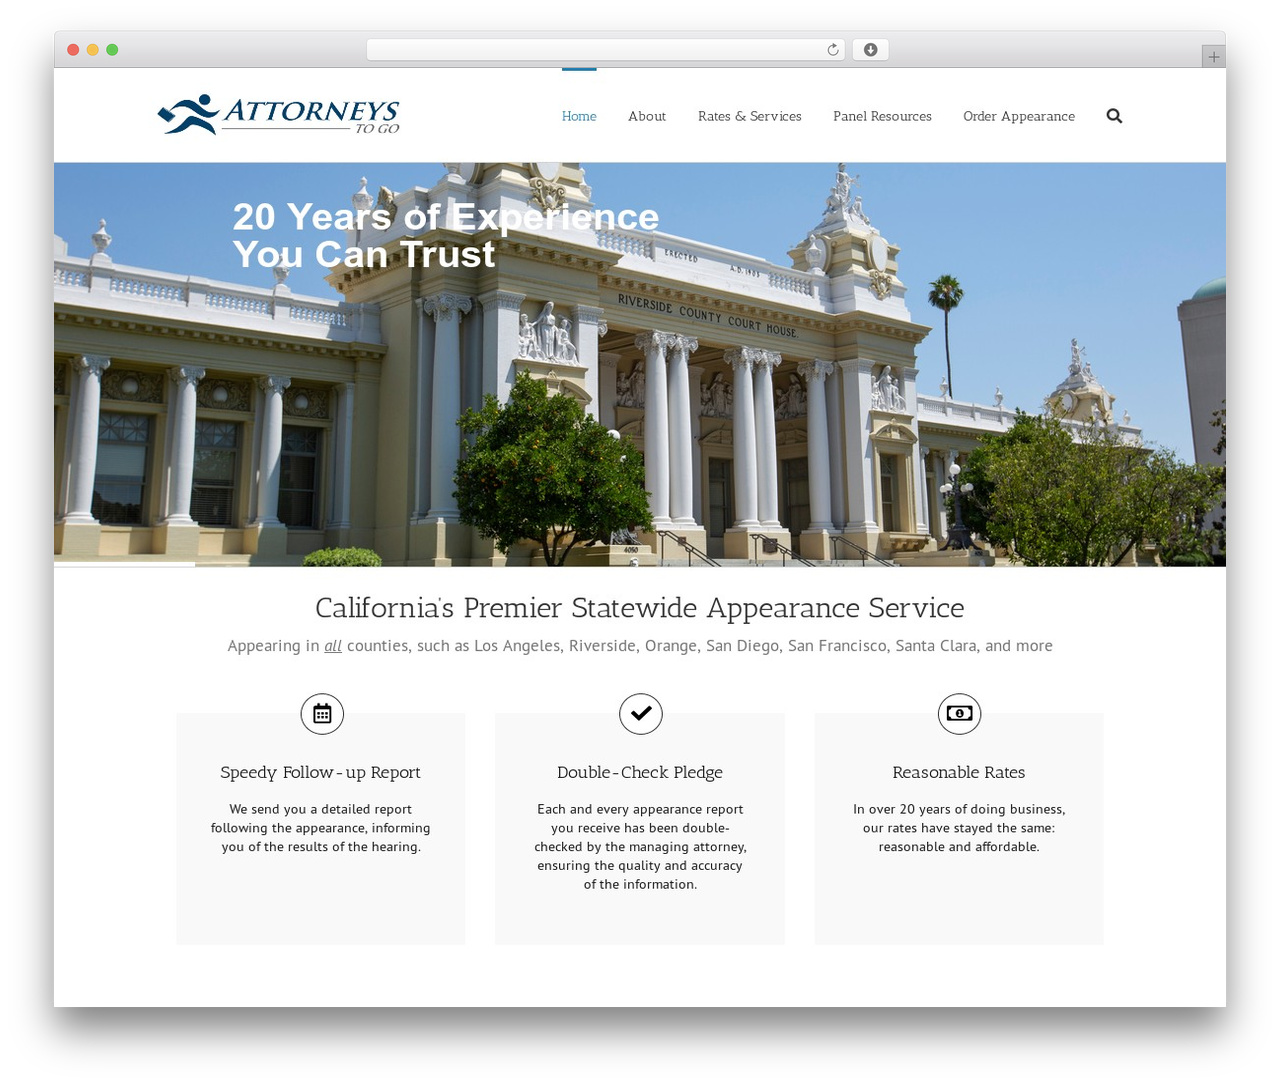 Avada company WordPress theme - attorneystogo.com